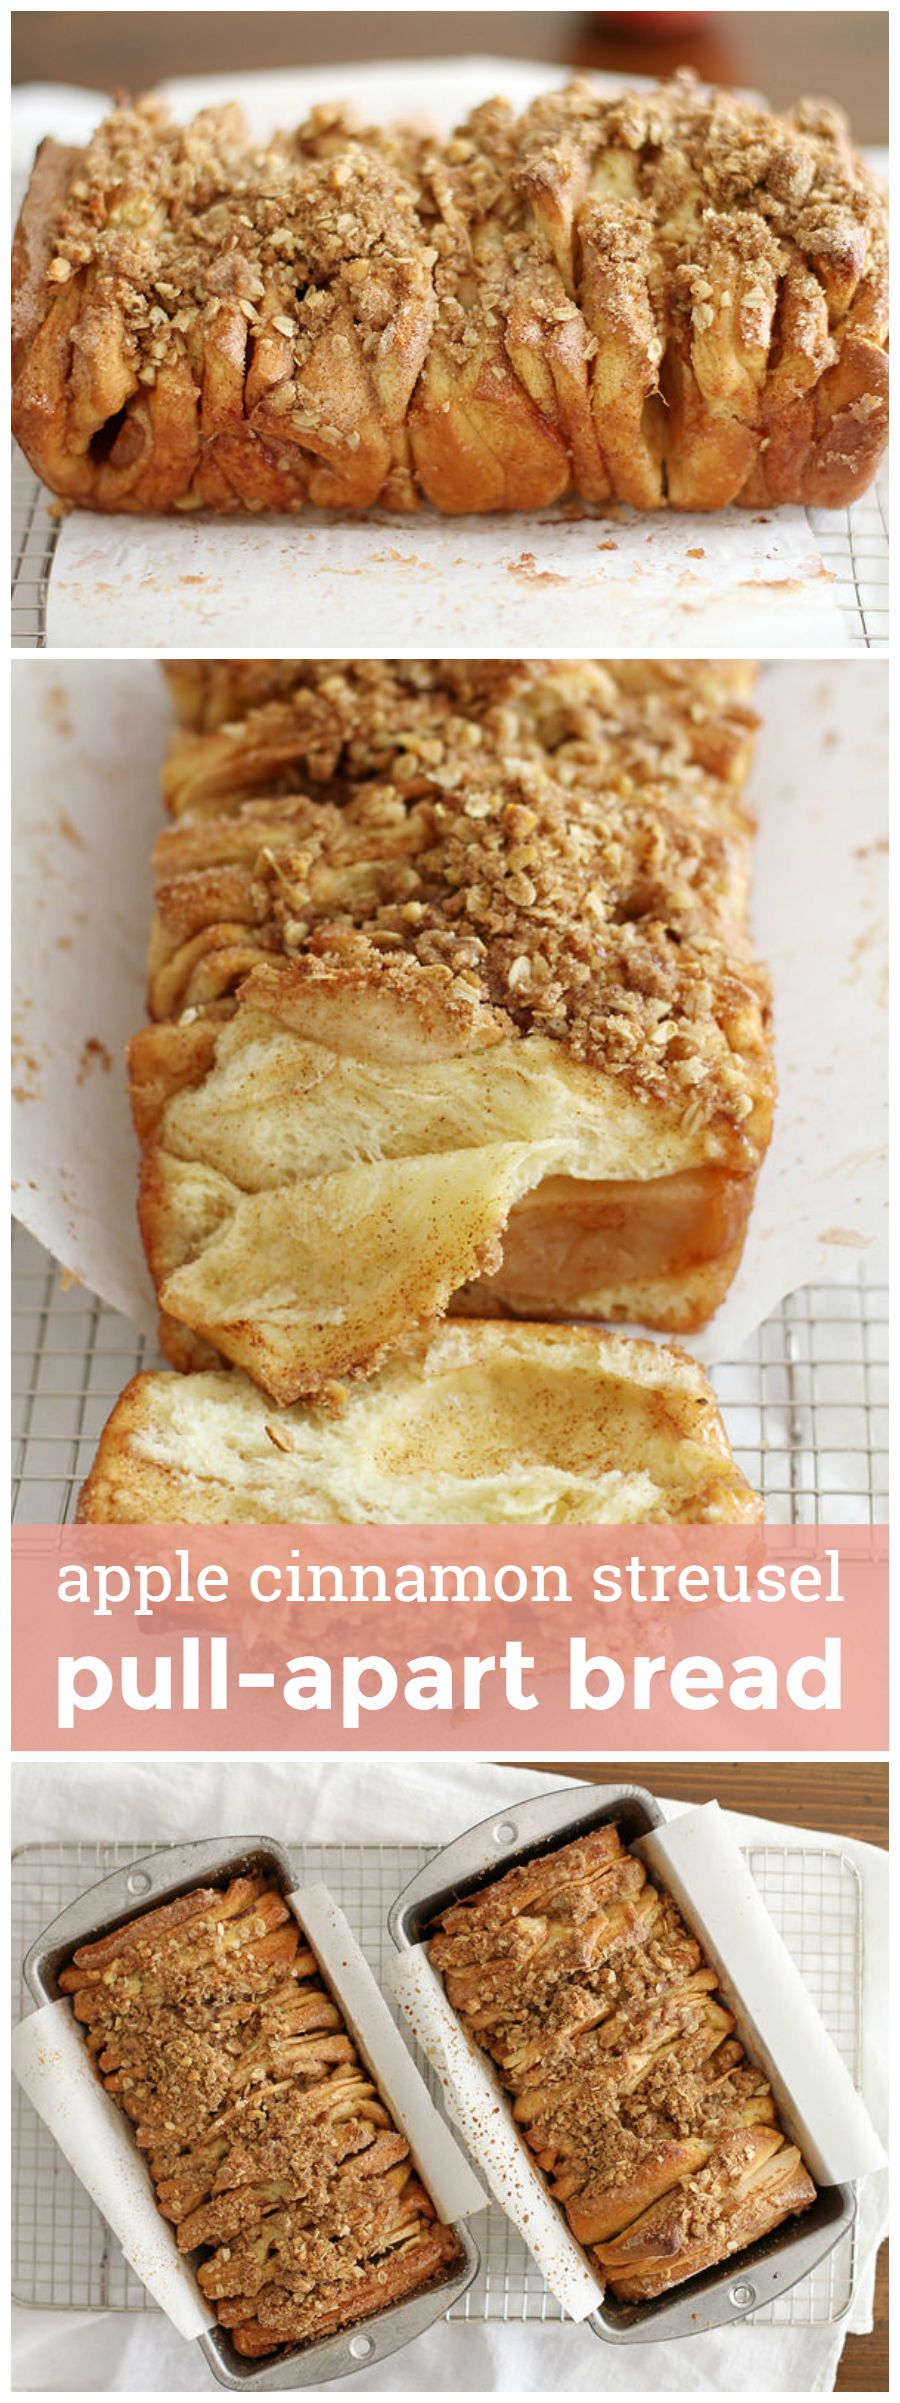 Apple Cinnamon Streusel Pull-Apart Bread -- a double-batch of sweet, cinnamon-y, fruity, flavorful streusel-topped carb goodness. girlversusdough.com @girlversusdough